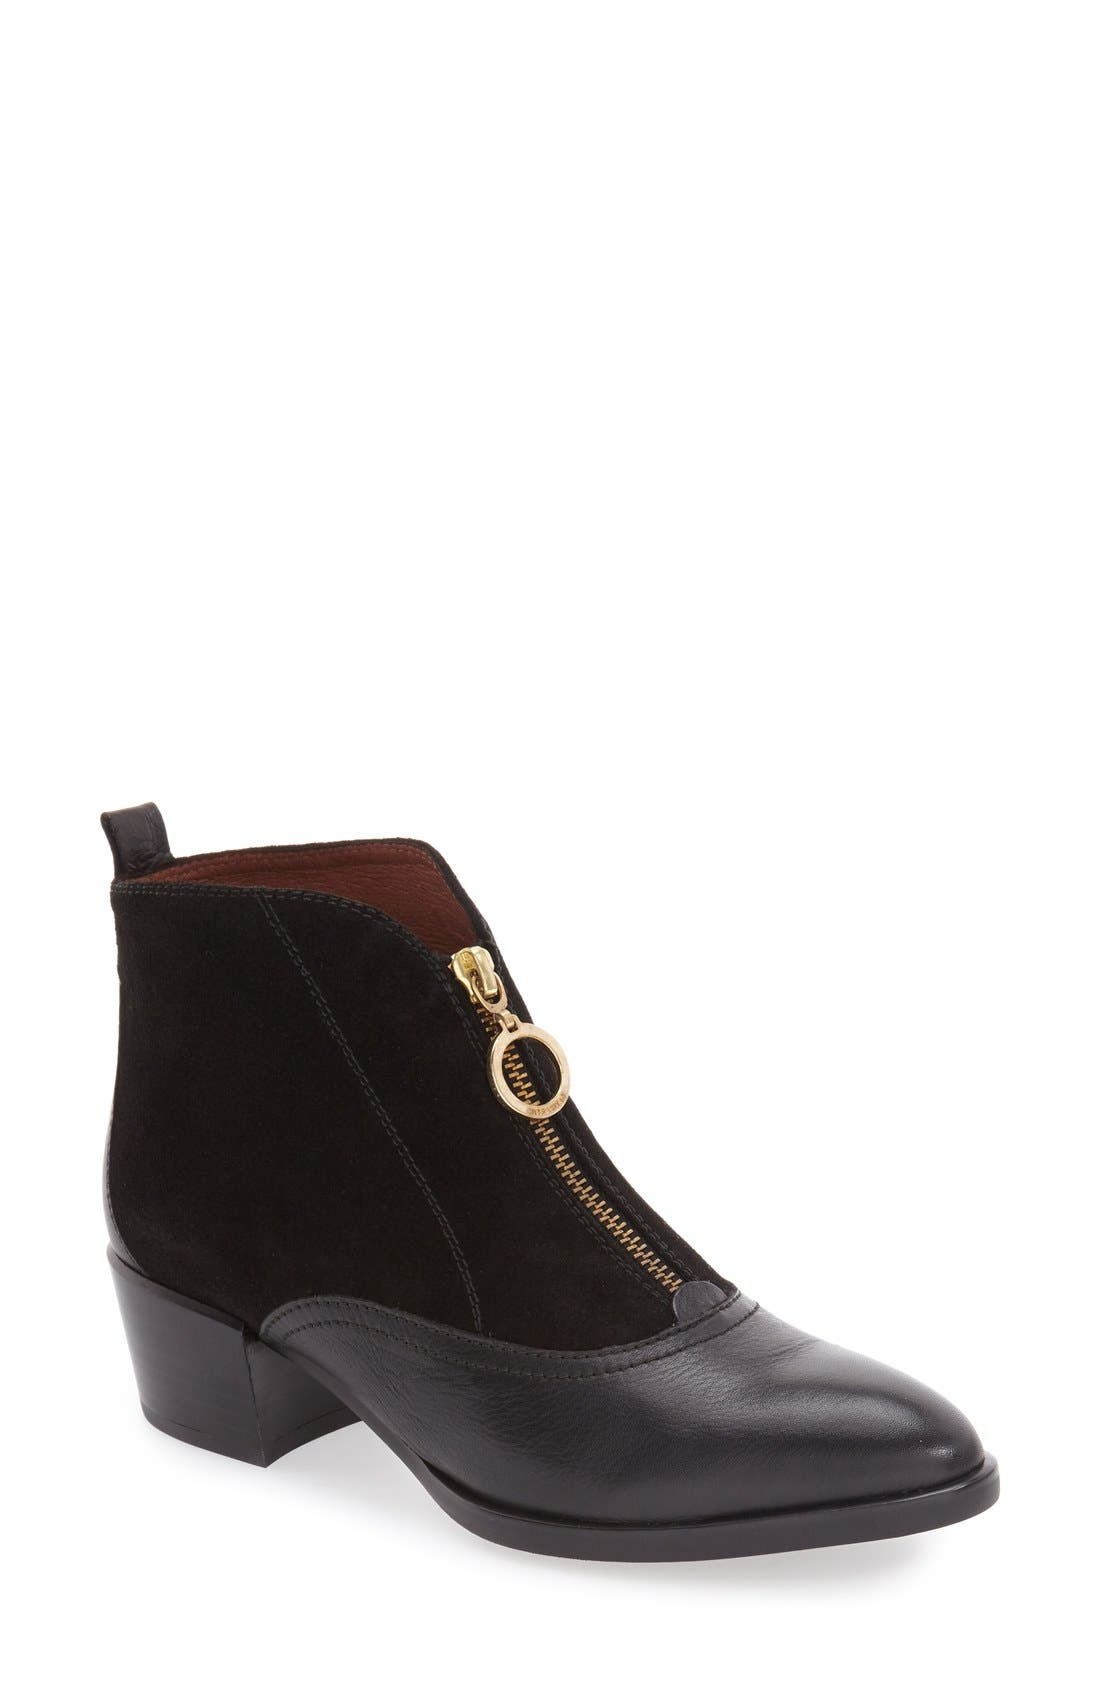 'Loralyn' Bootie,                         Main,                         color, BLACK LEATHER